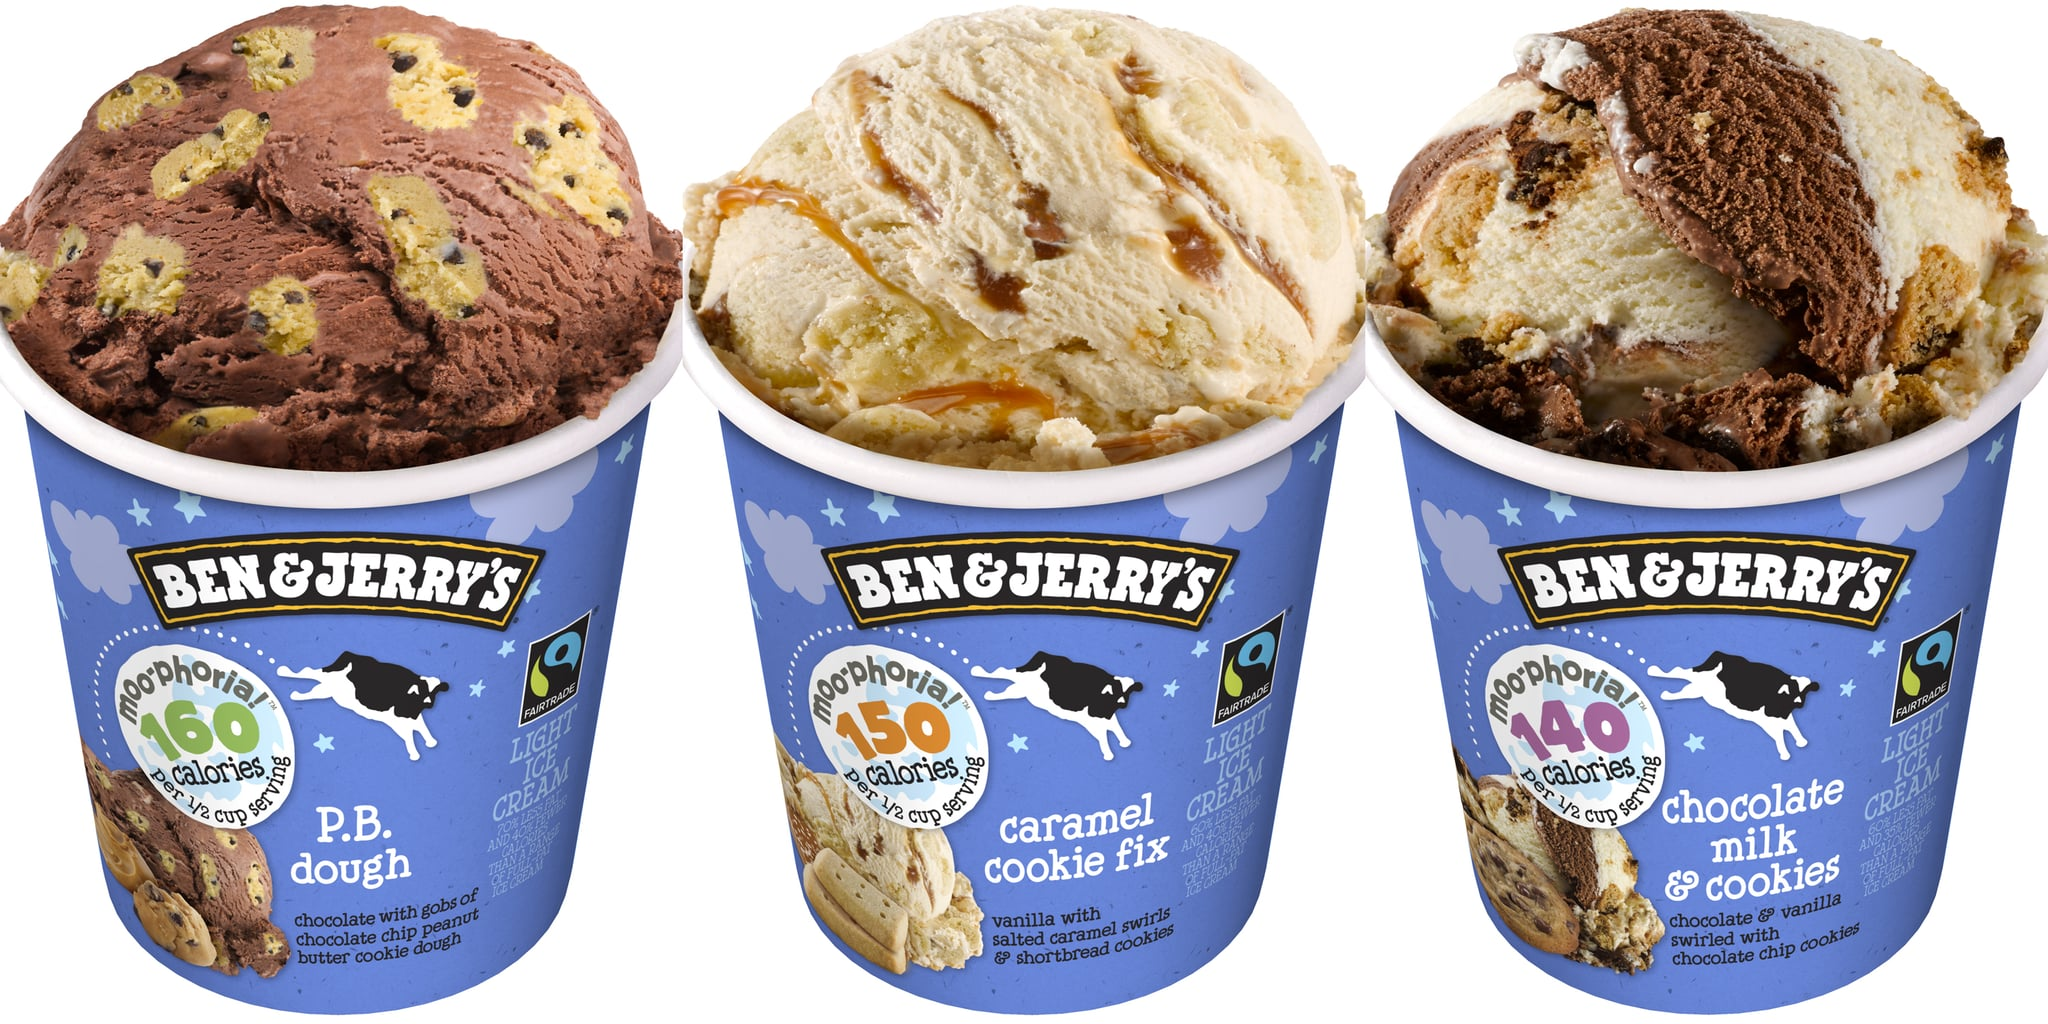 Ben & Jerry's Moo-phoria: A Line of Healther-For-You Ice Cream